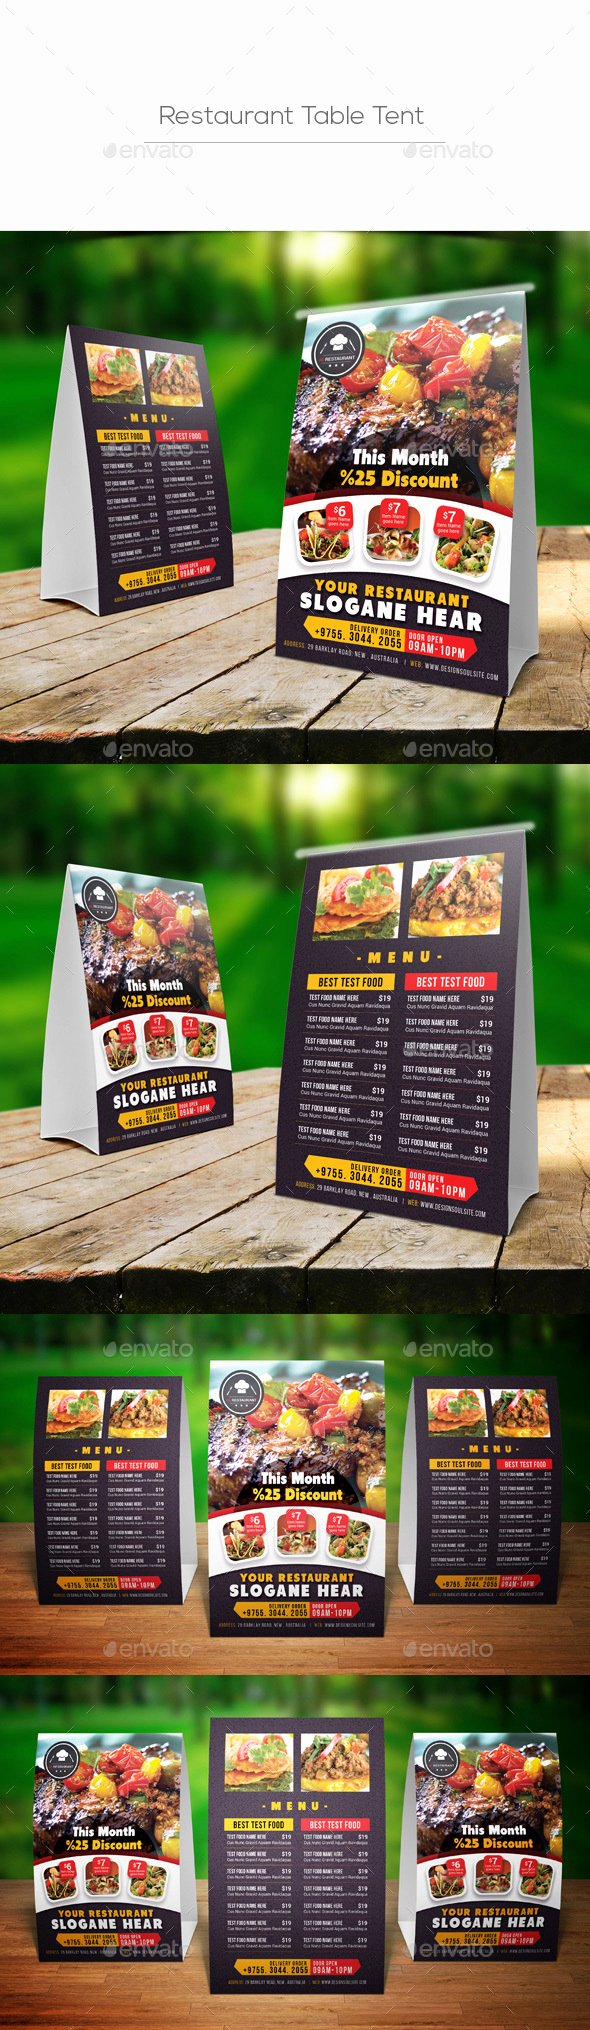 Restaurant Table Tent Template Beautiful Restaurant Table Tent by Designsoul14